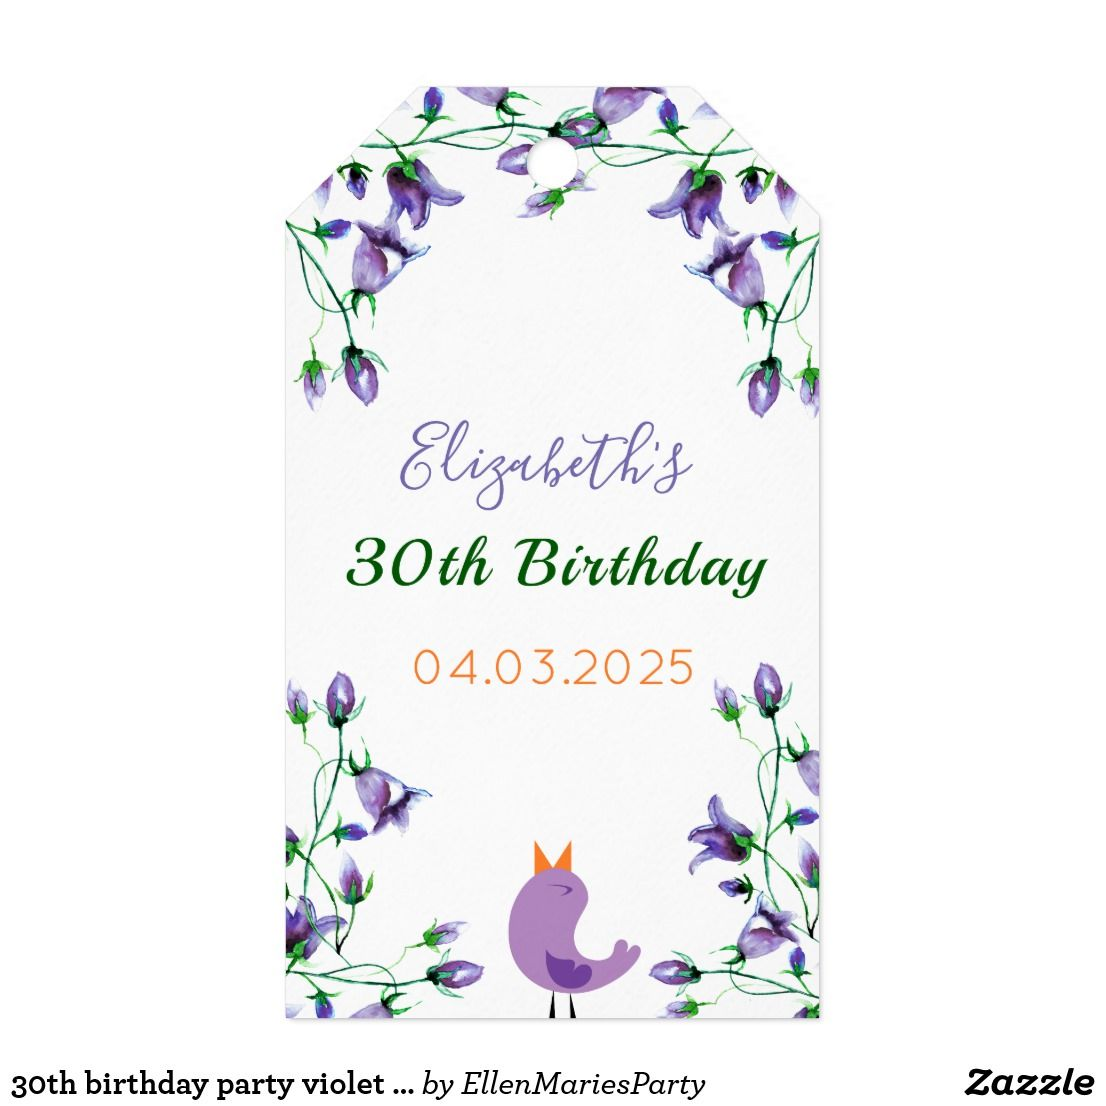 30th birthday party violet florals white thank you gift